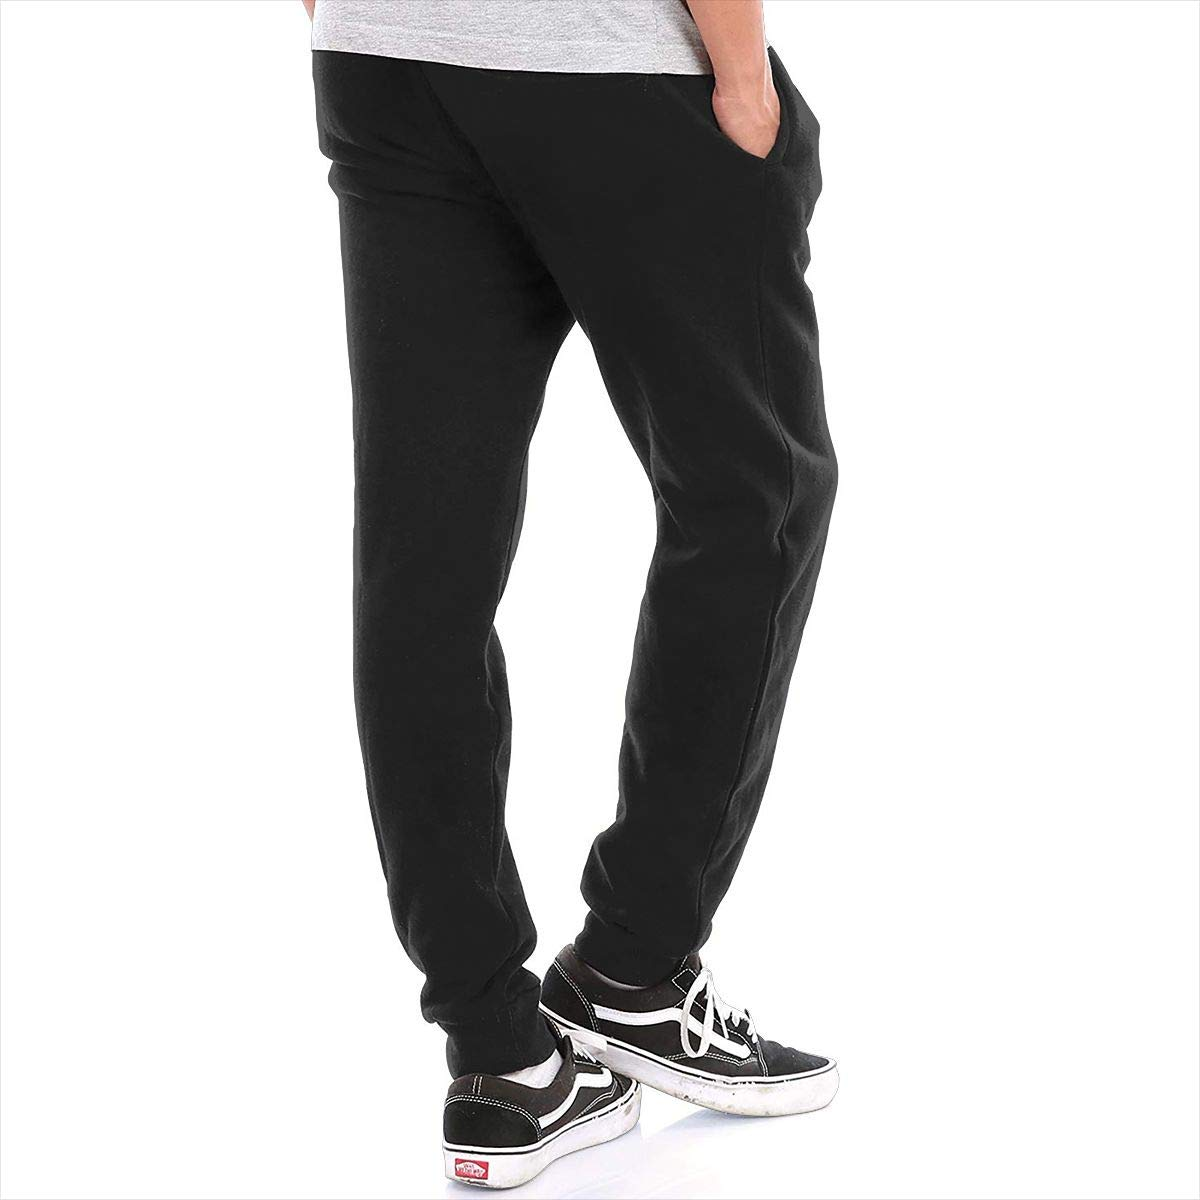 DD214 Alumni Drawstring Waist,100/% Cotton,Elastic Waist Cuffed,Jogger Sweatpants Black